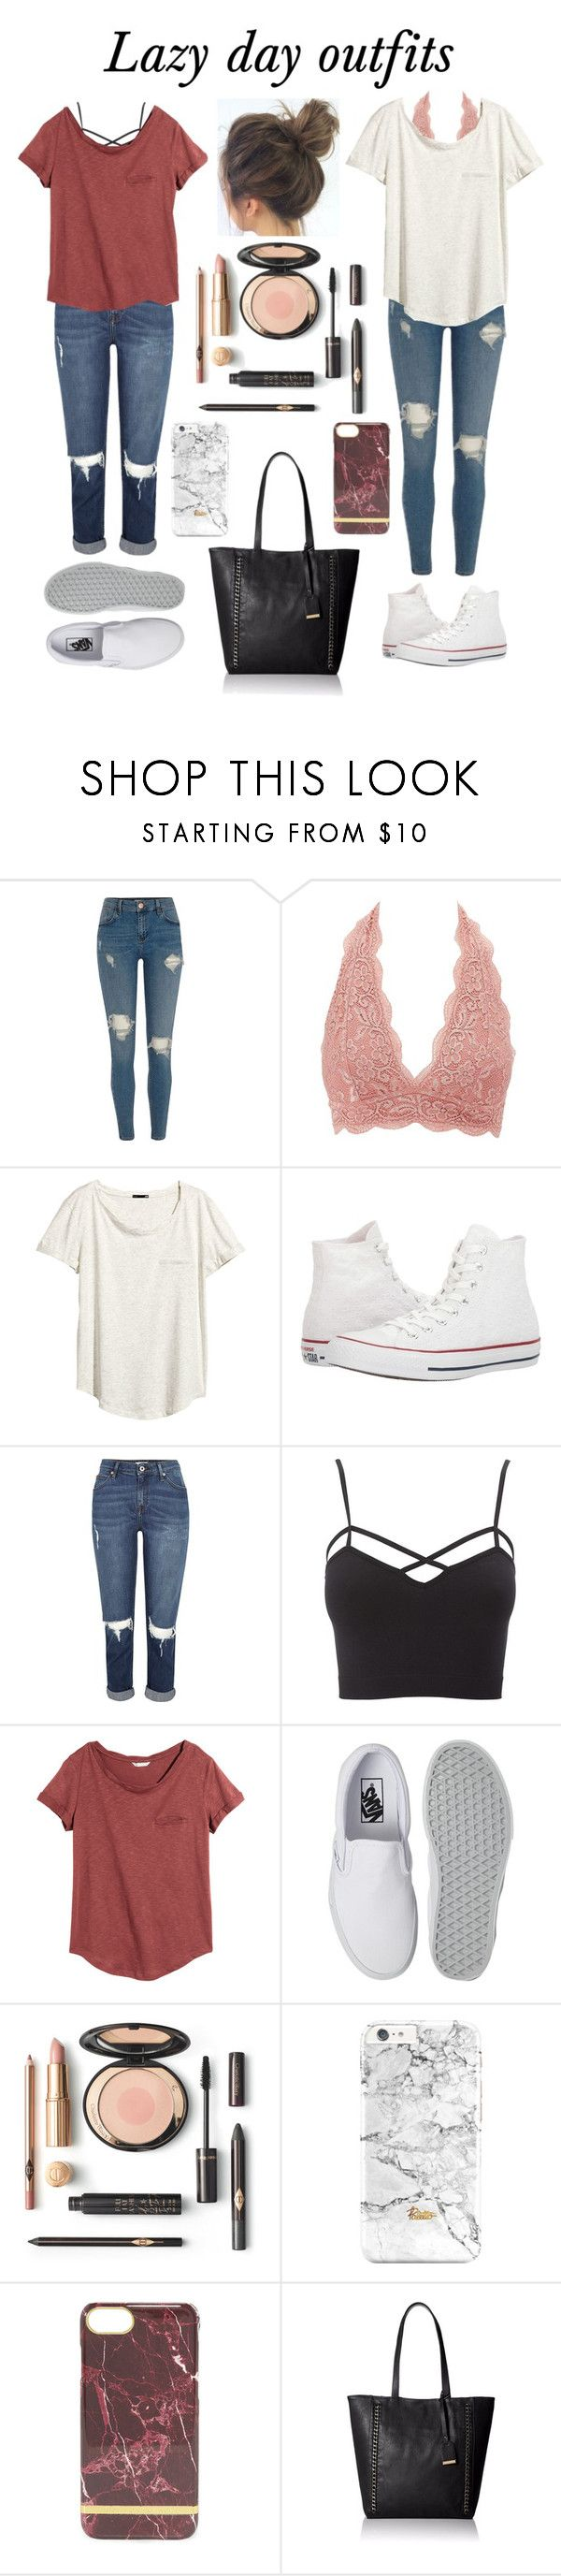 """Lazy day outfits"" by virtuallydressed ❤ liked on Polyvore featuring River Island, Charlotte Russe, H&M, Converse, Vans, Call it SPRING and plus size clothing"